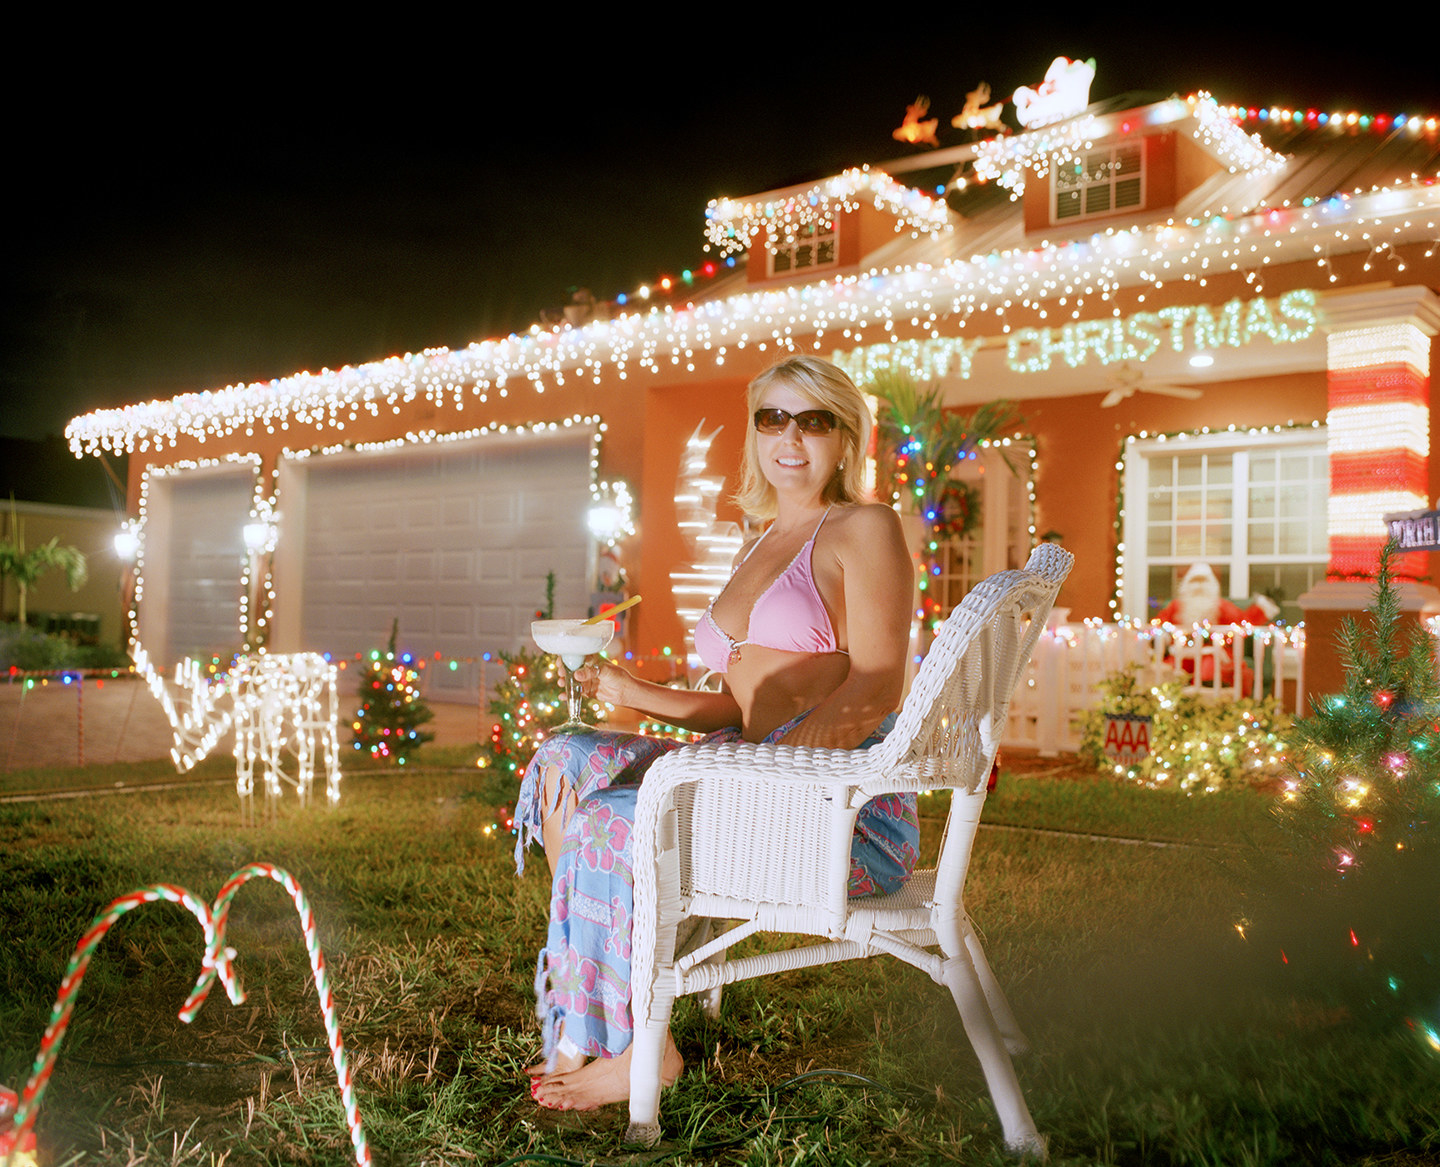 A woman in a bikini top and sarong on the lawn of her house, covered with lights